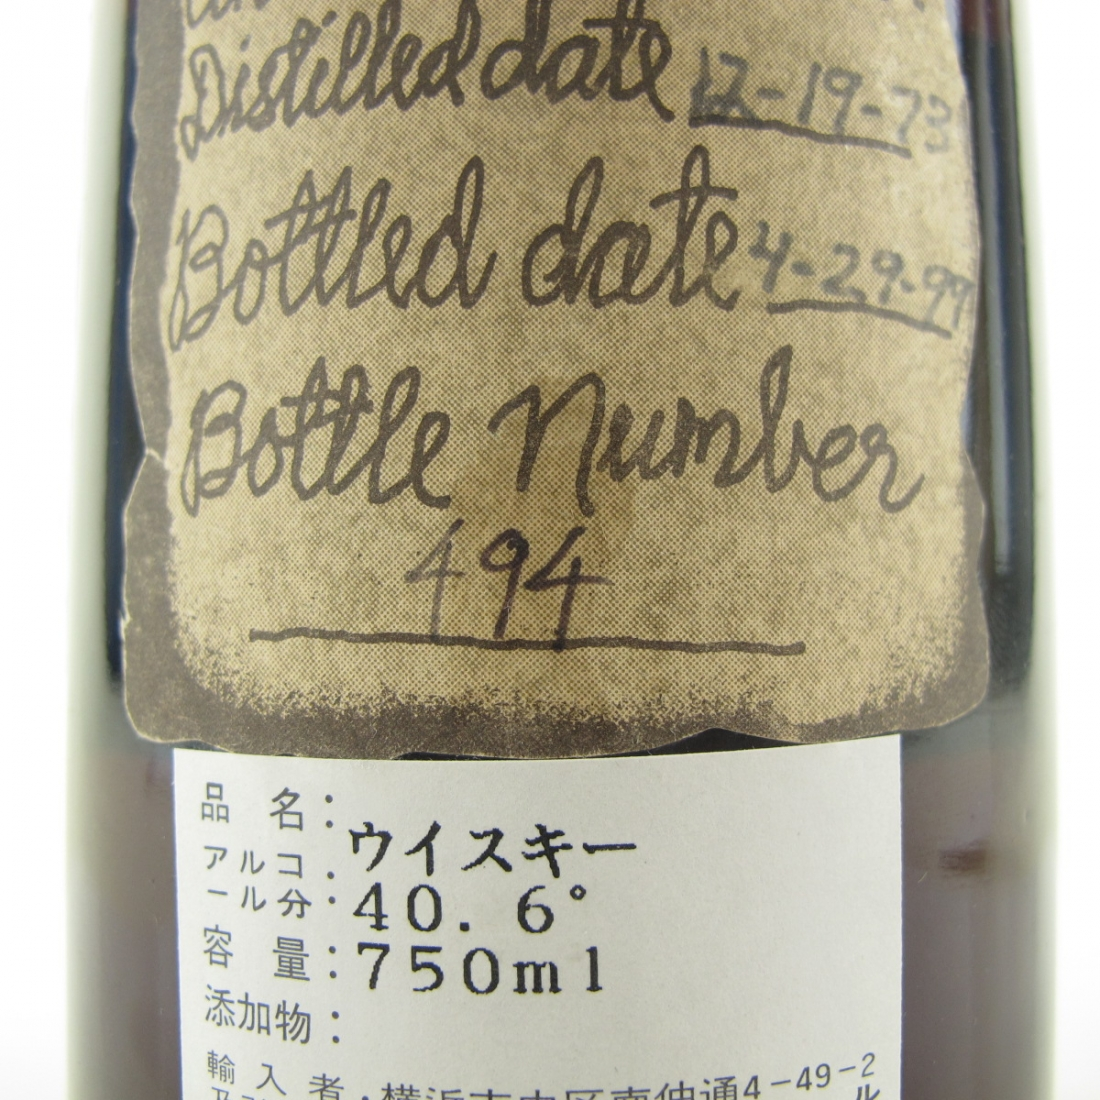 Very Olde St. Nick 1973 Ancient Estate Reserve 25 Year Old